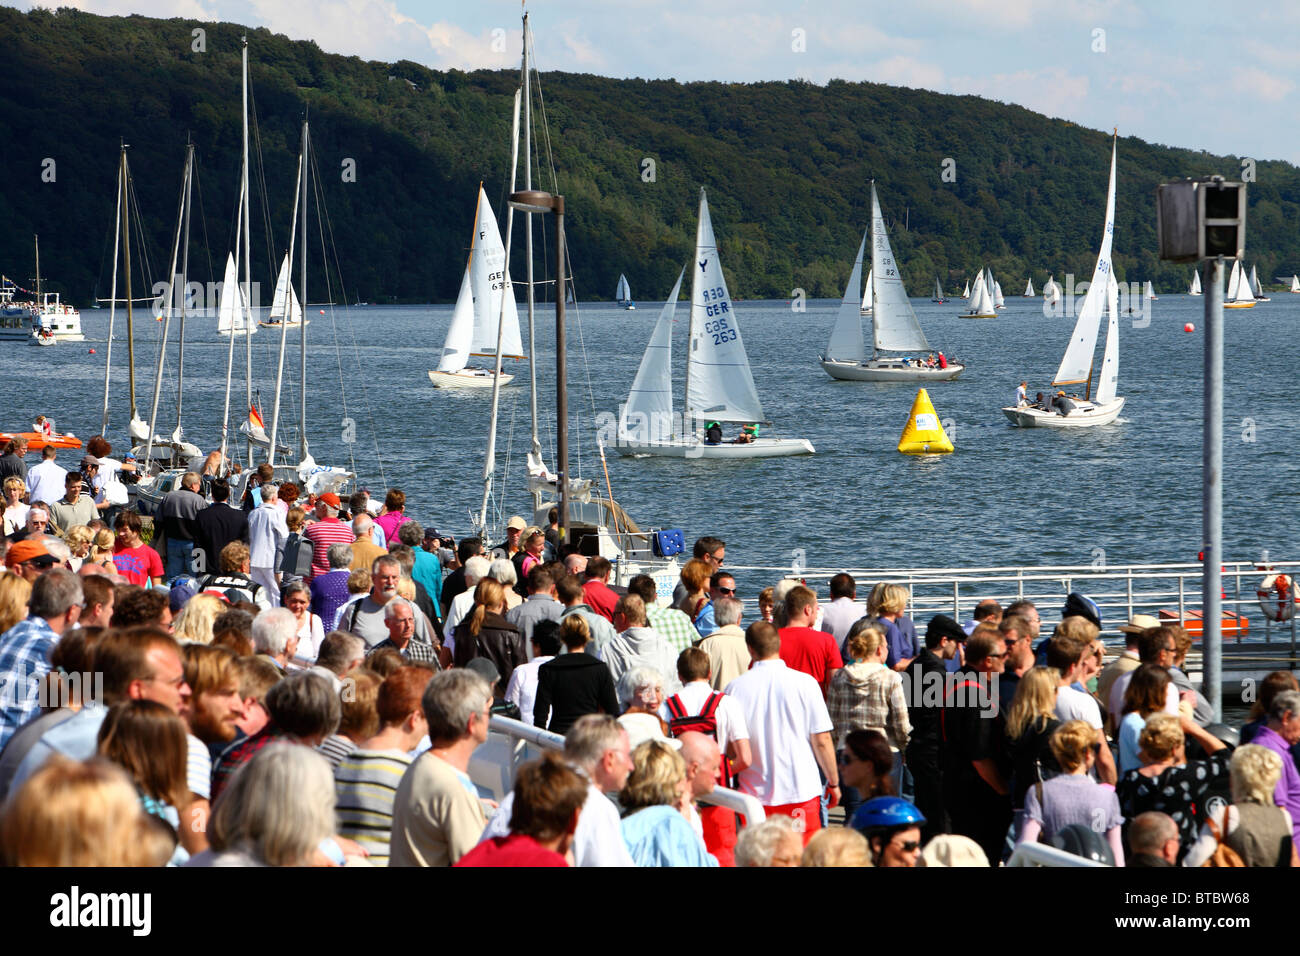 Baldeneysee lake in Essen. Sailing boats on an artificial lake, fed by river Ruhr. Recreational area. - Stock Image